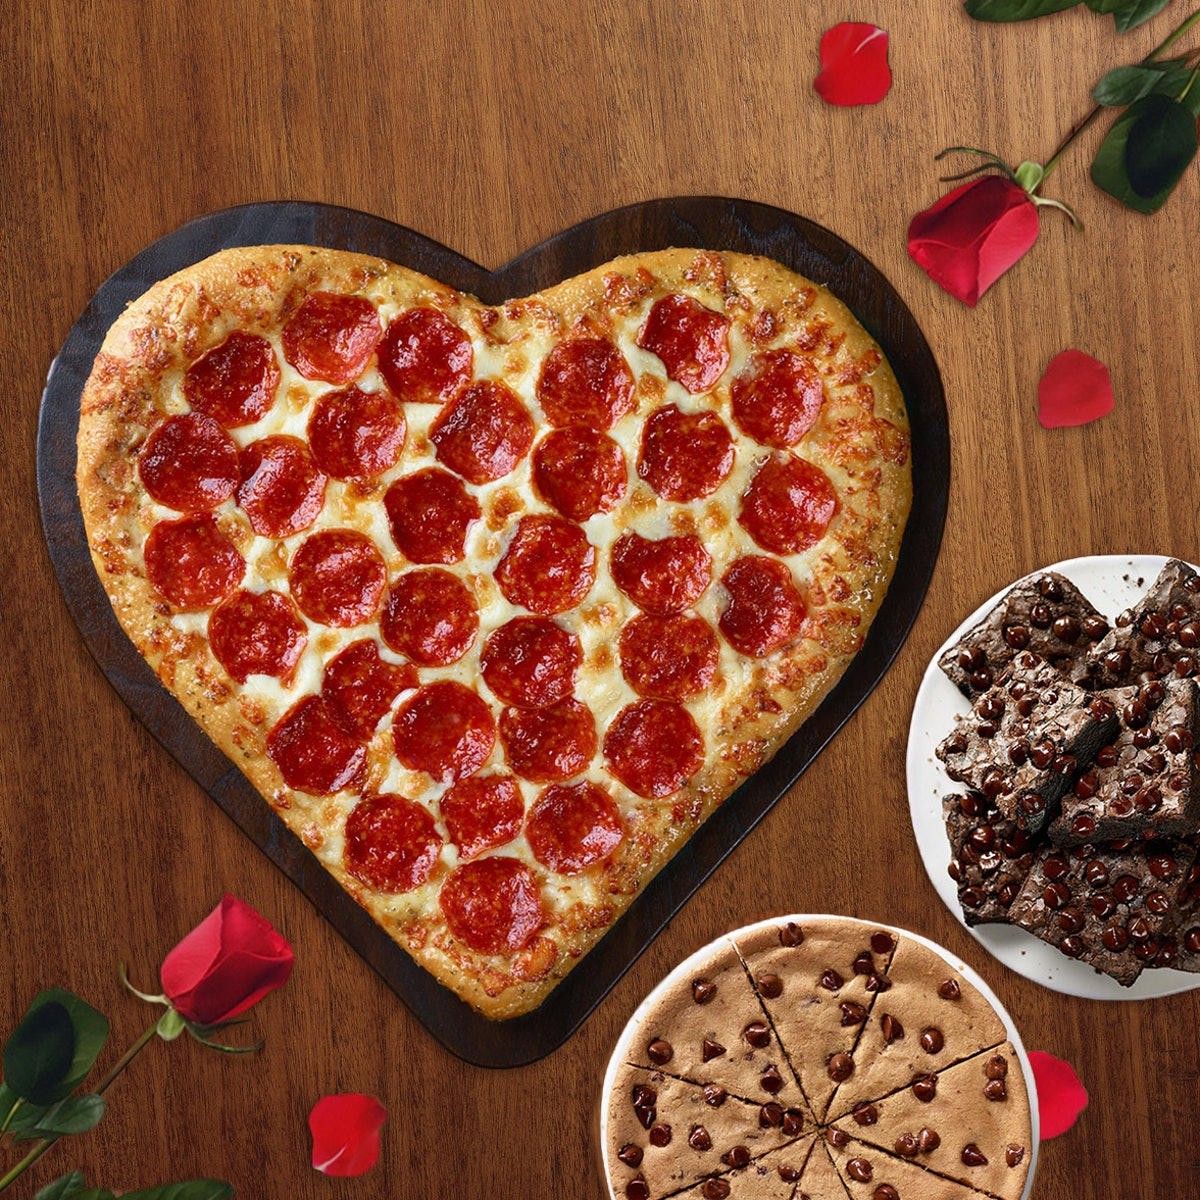 Pizza Hut Just Dropped A Valentine's Day Bundle That Will Make Cheese Lovers Swoon